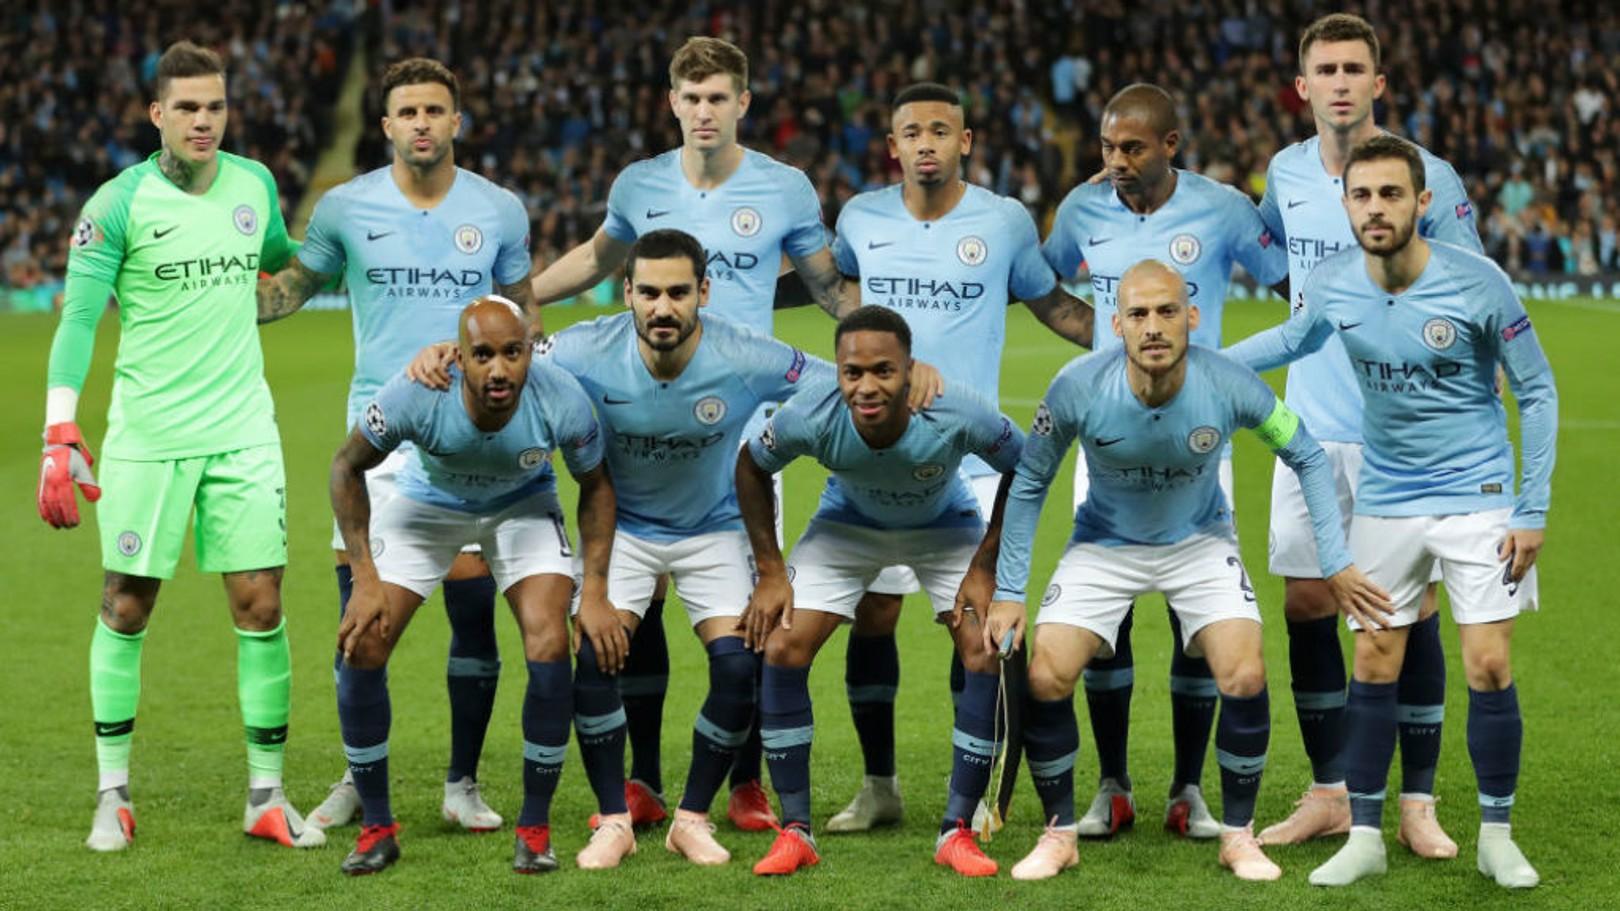 SQUAD GOALS: Tickets are now on sale to see City tackle Shakhtar Donetsk at the Etihad next month